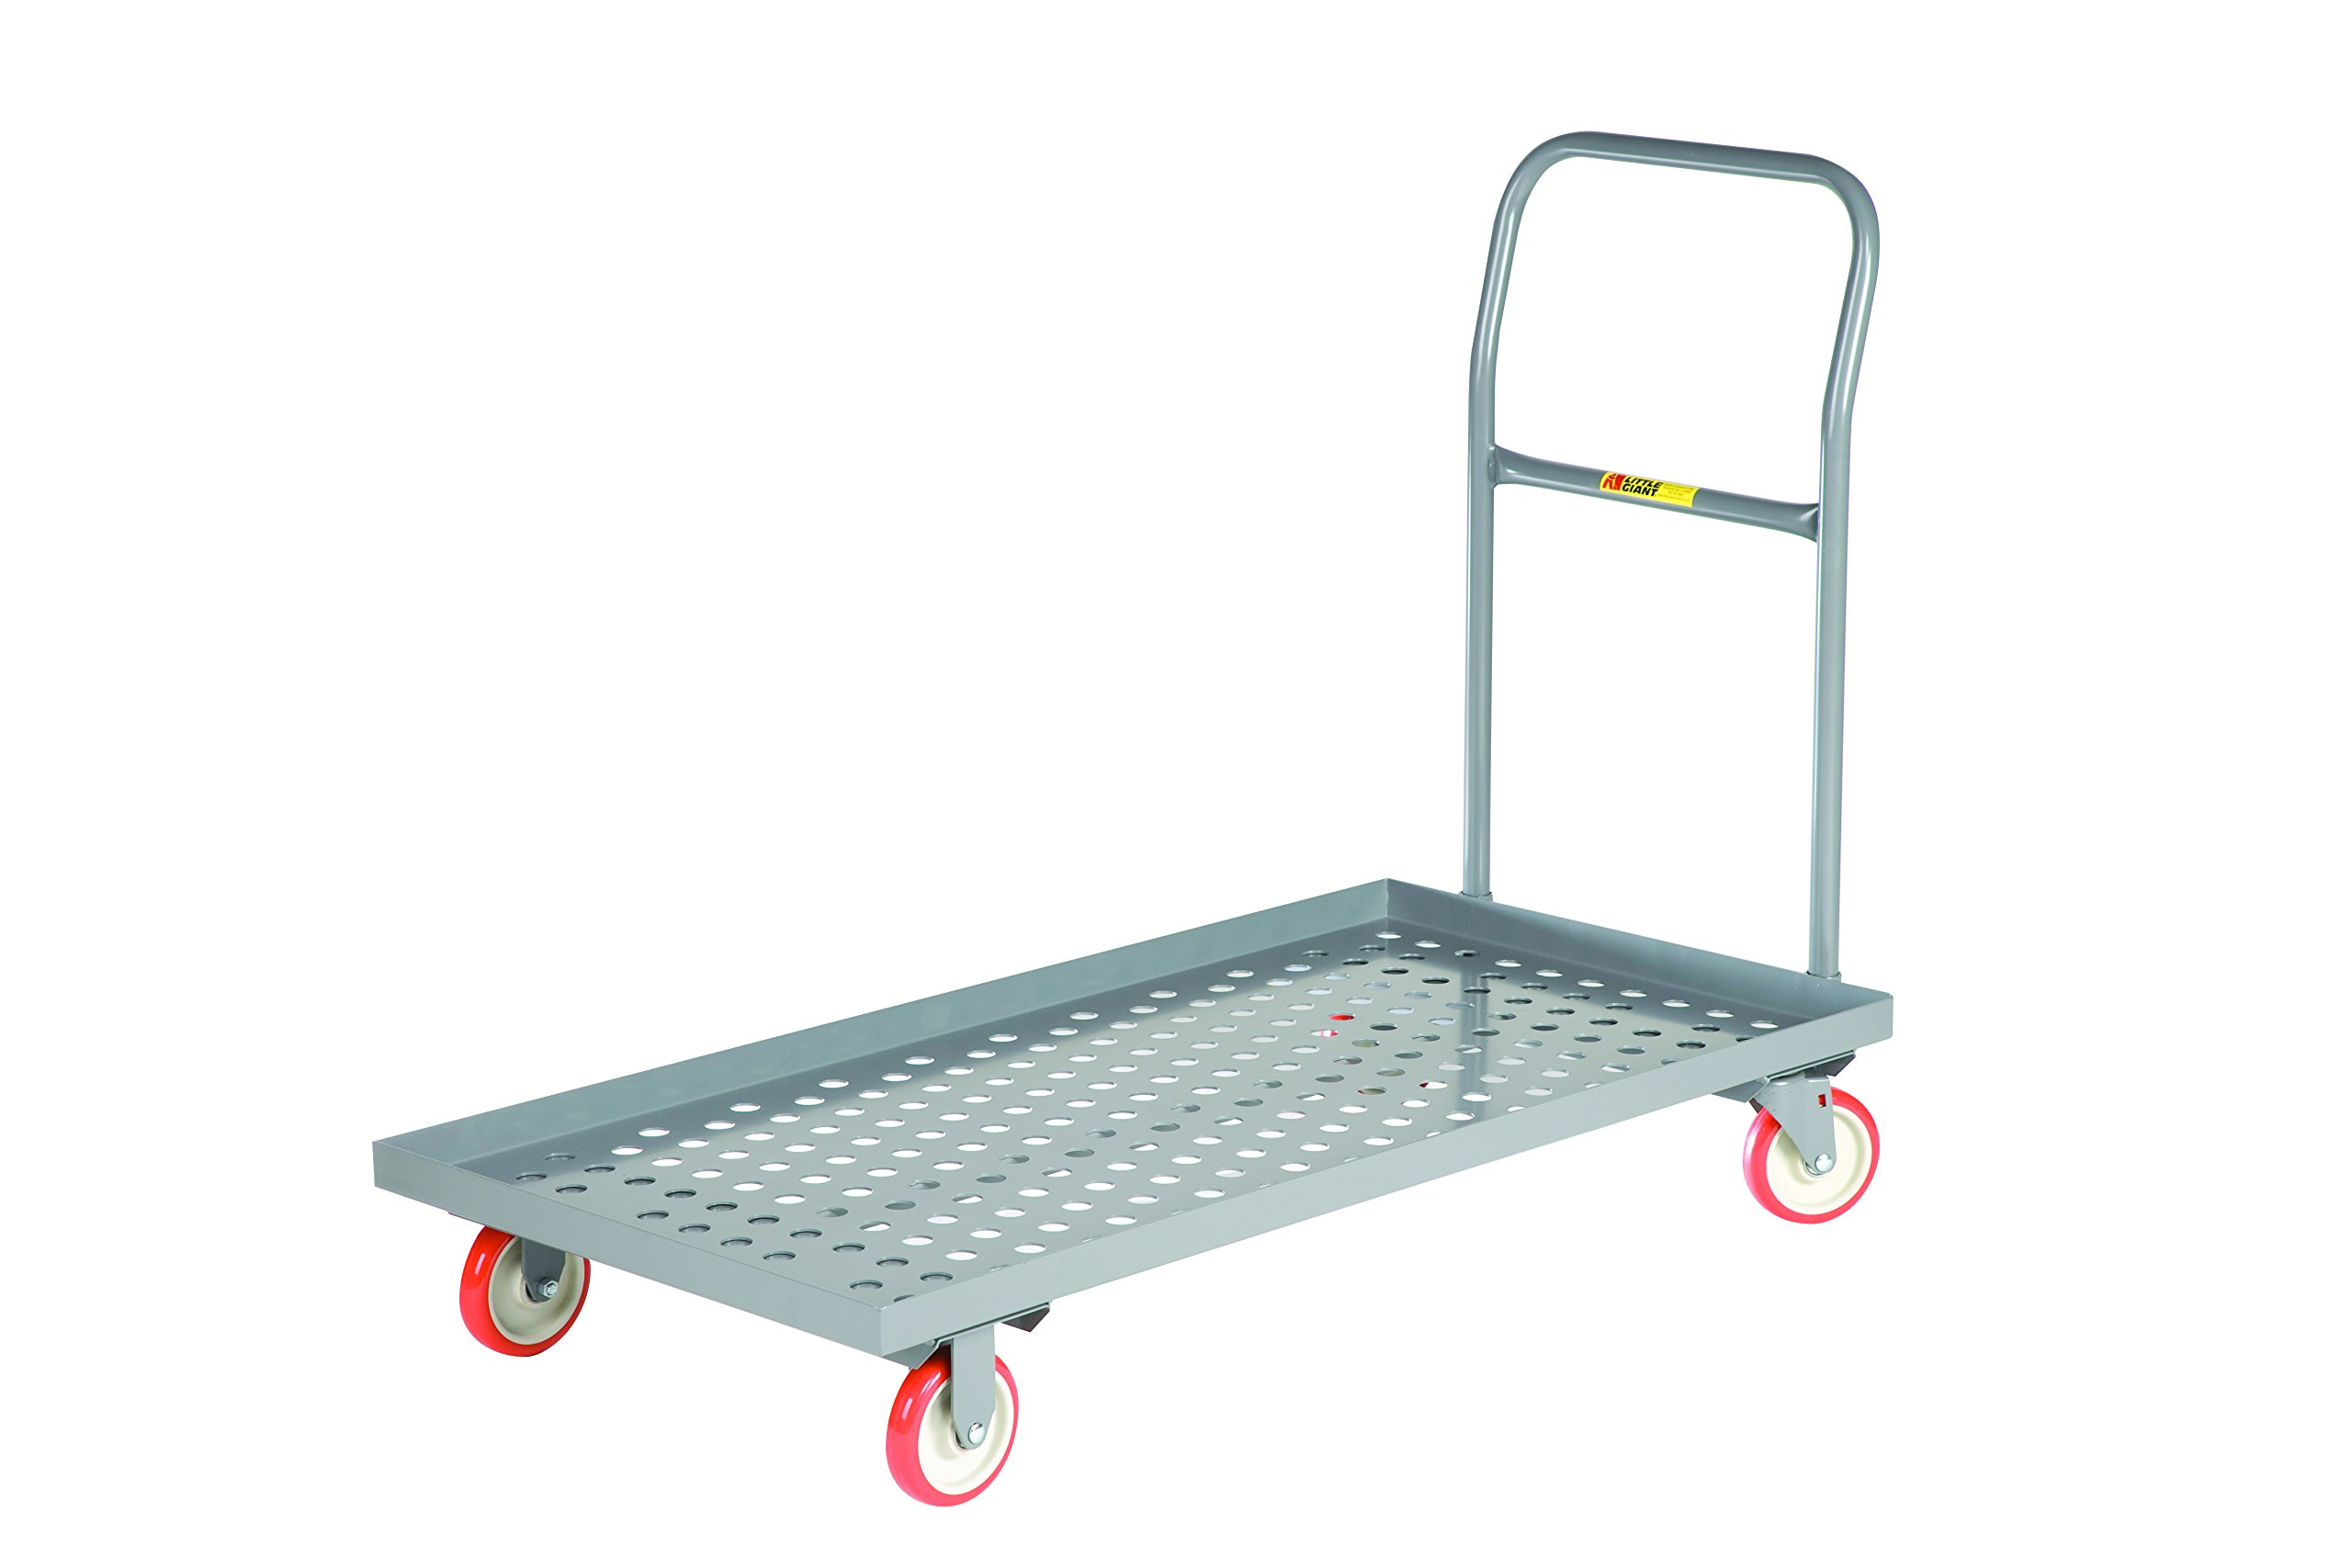 Little Giant T710-P-LU-UPS Platform Truck, 24'' x 36'', Gray